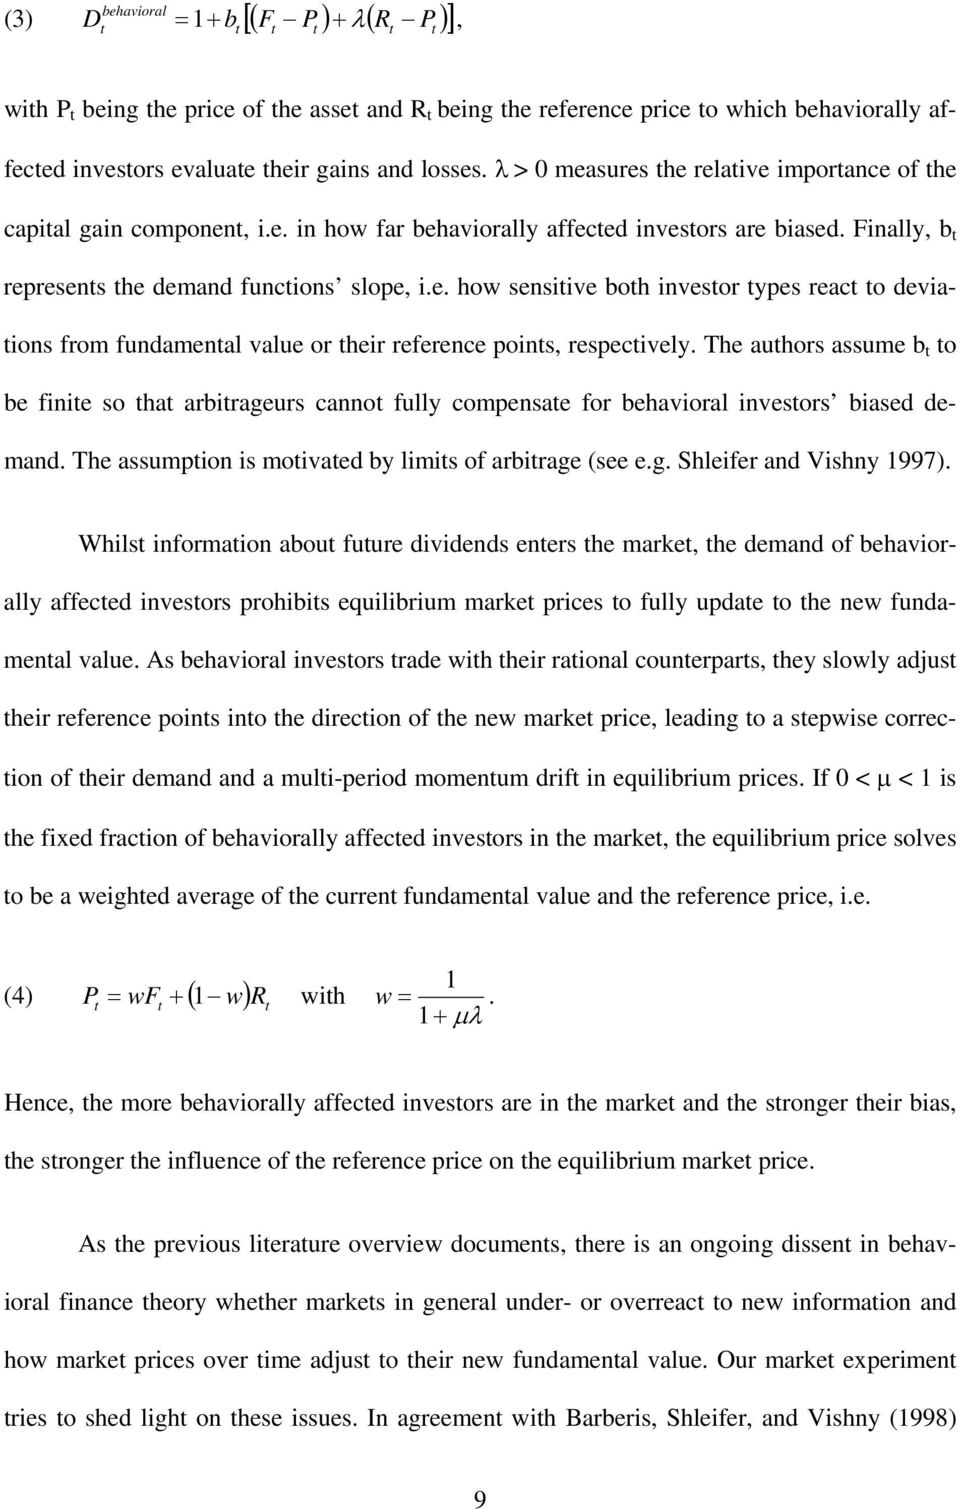 The authors assume b t to be finite so that arbitrageurs cannot fully compensate for behavioral investors biased demand. The assumption is motivated by limits of arbitrage (see e.g. Shleifer and Vishny 1997).